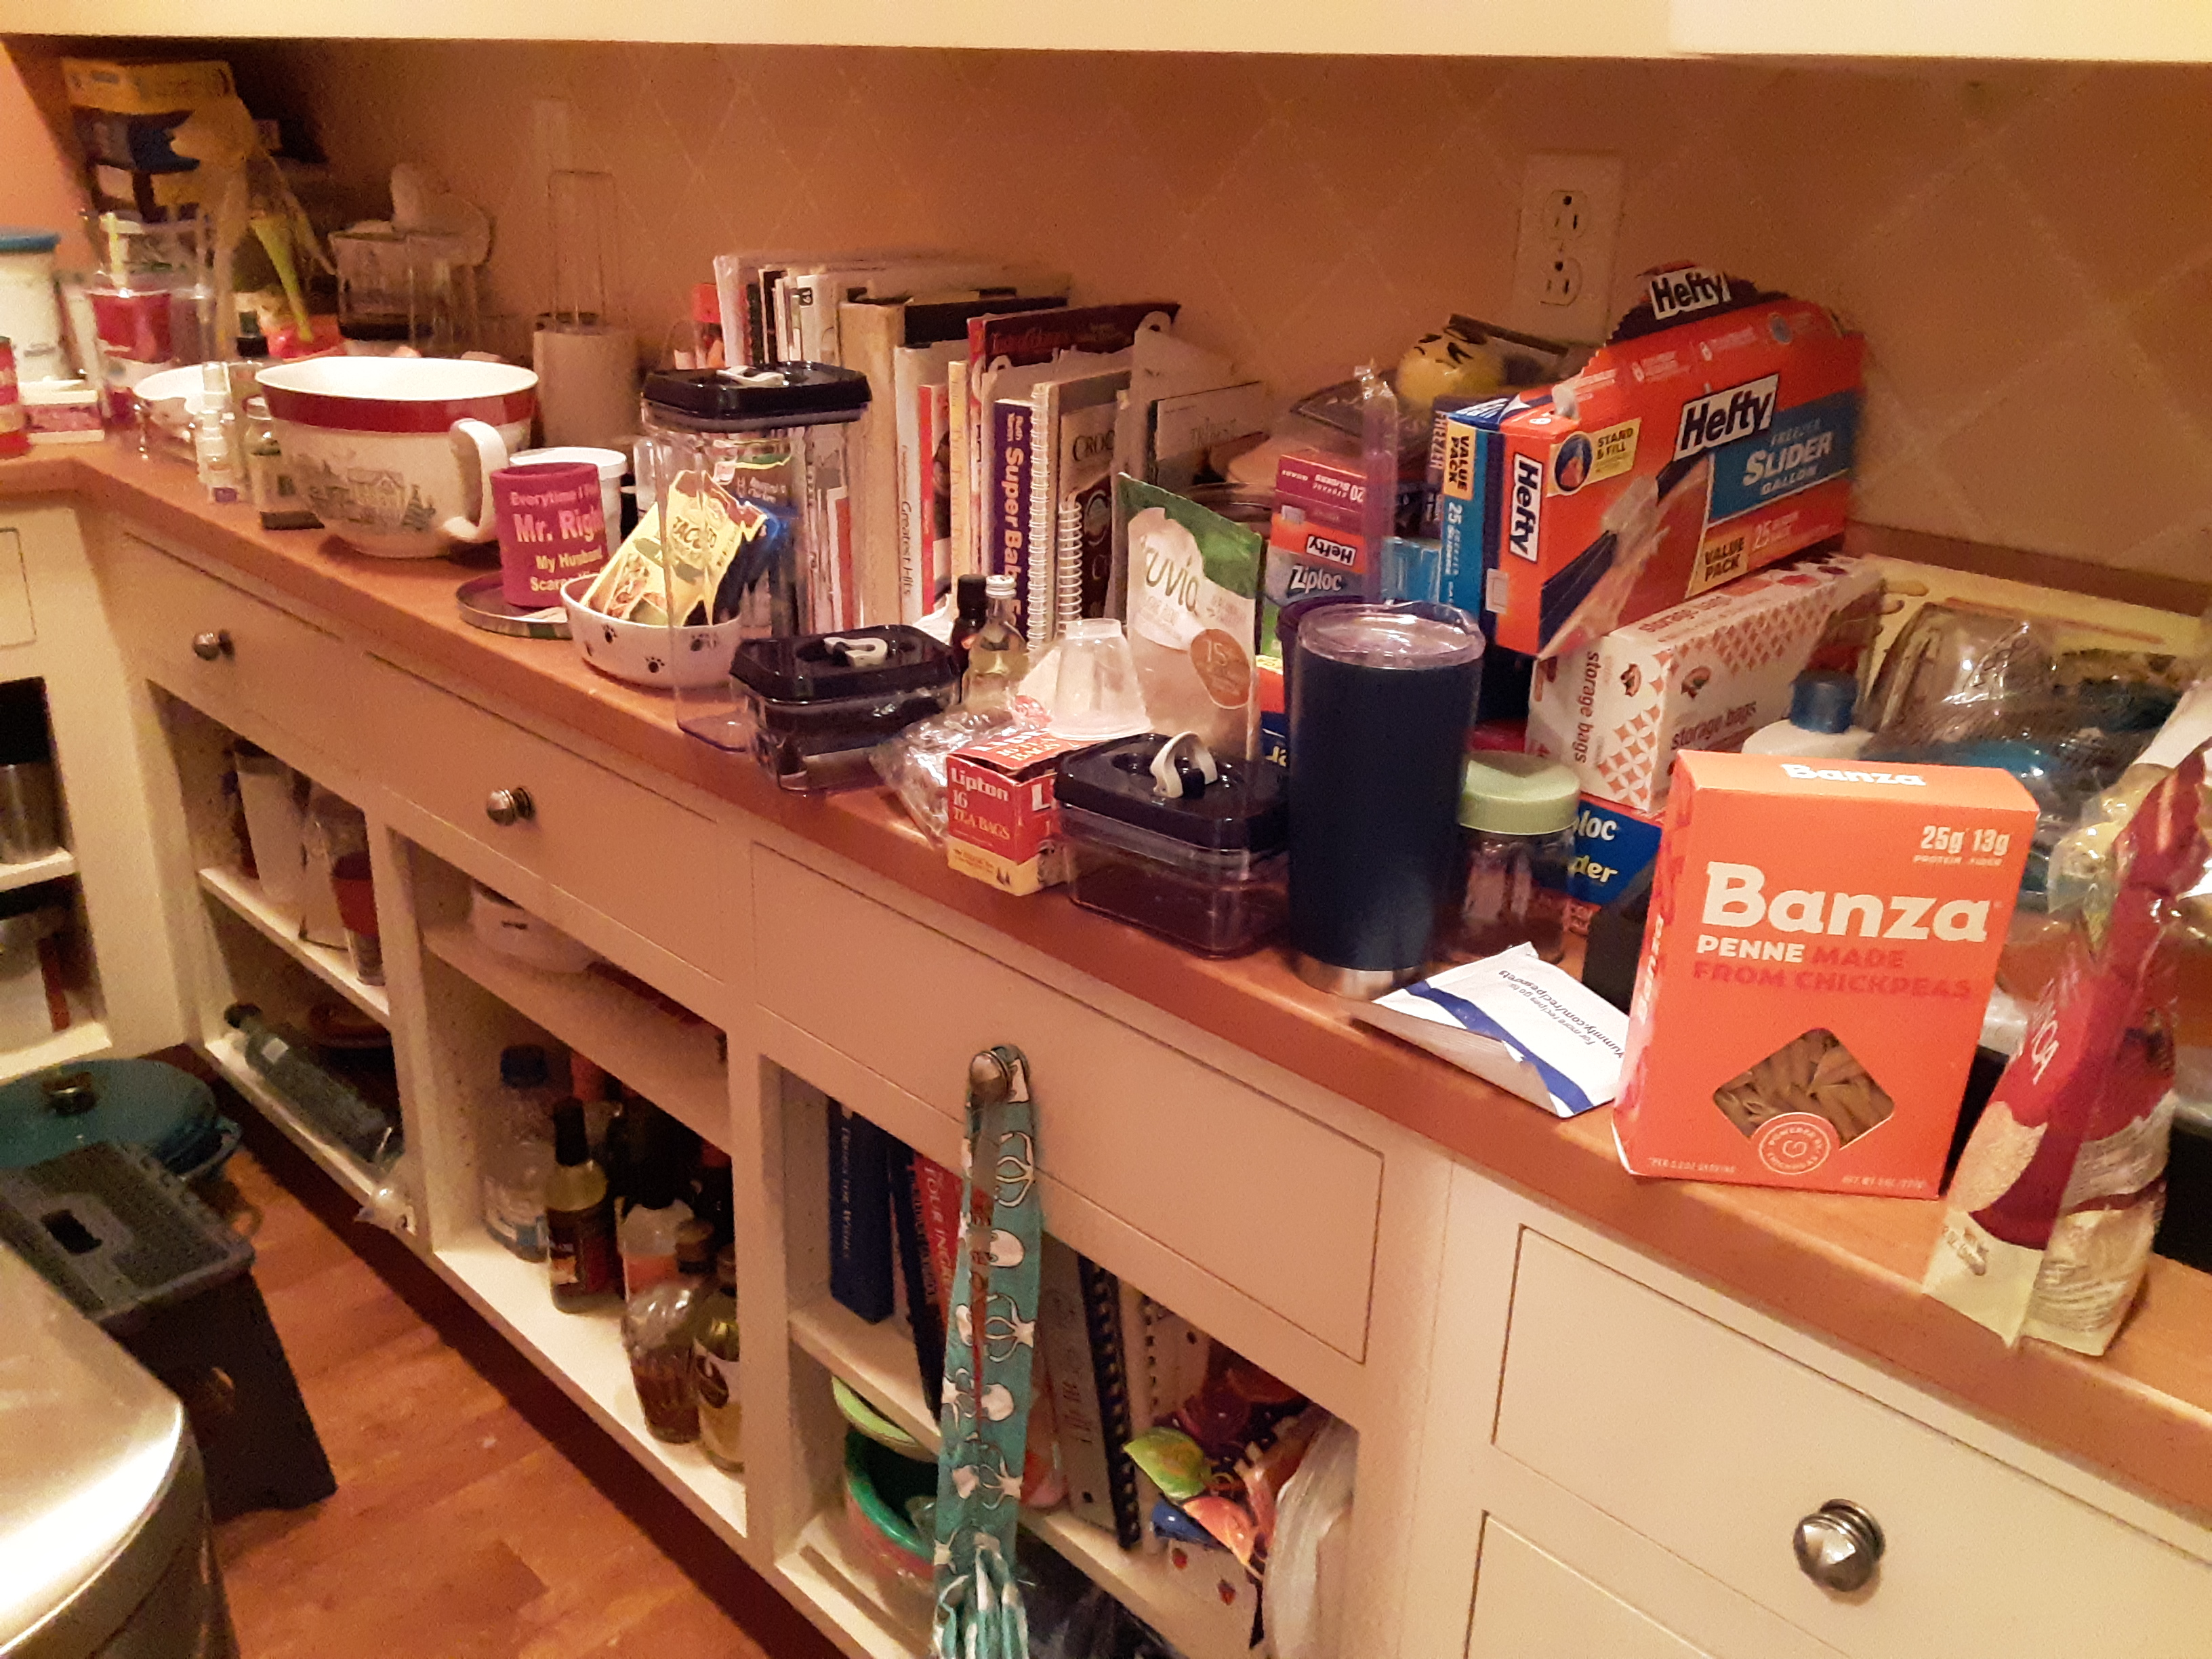 The crowded  and cluttered pantry counter